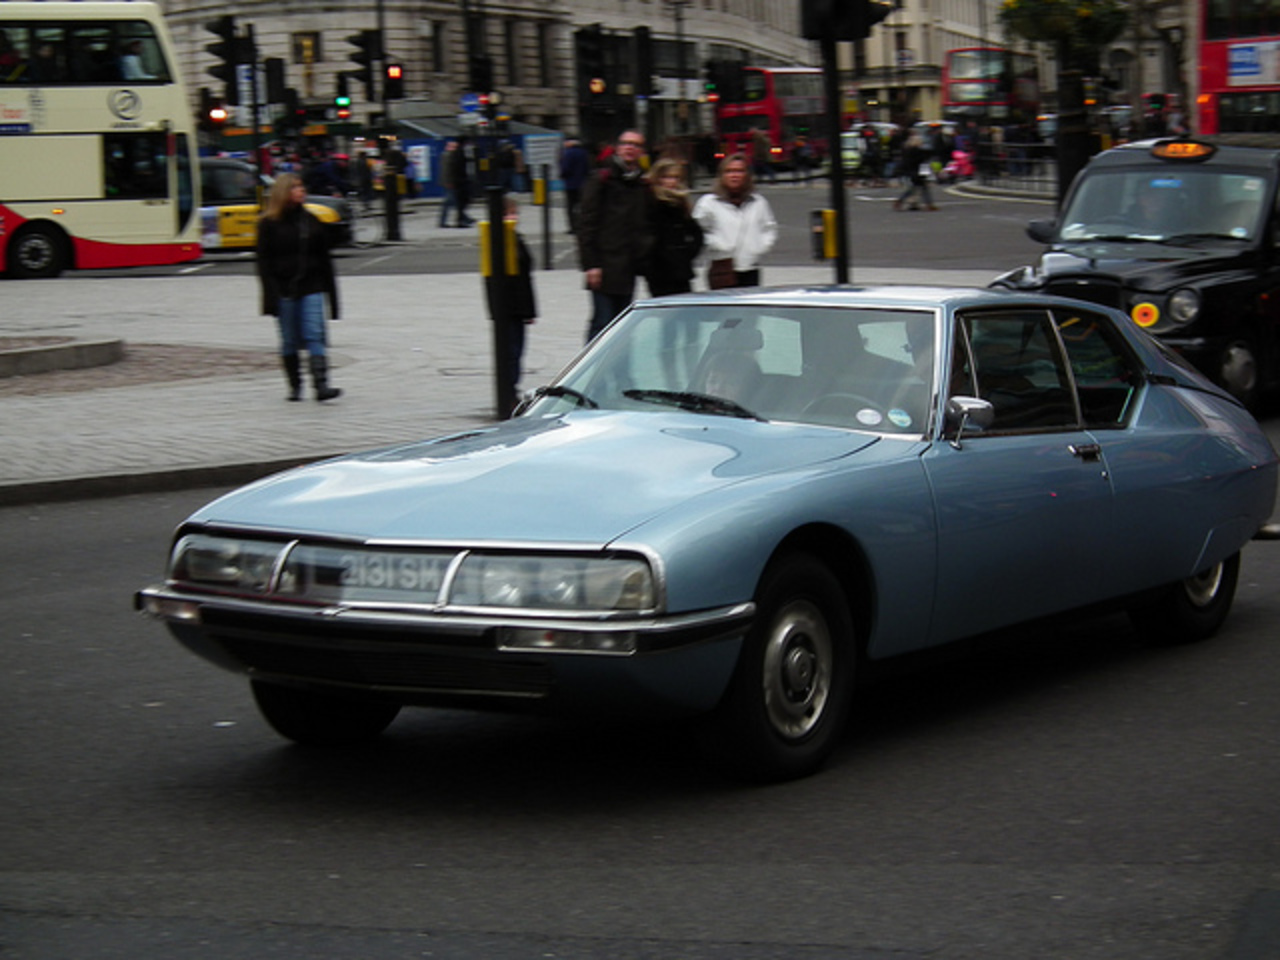 Citroen Sm Efi | Flickr - Photo Sharing!